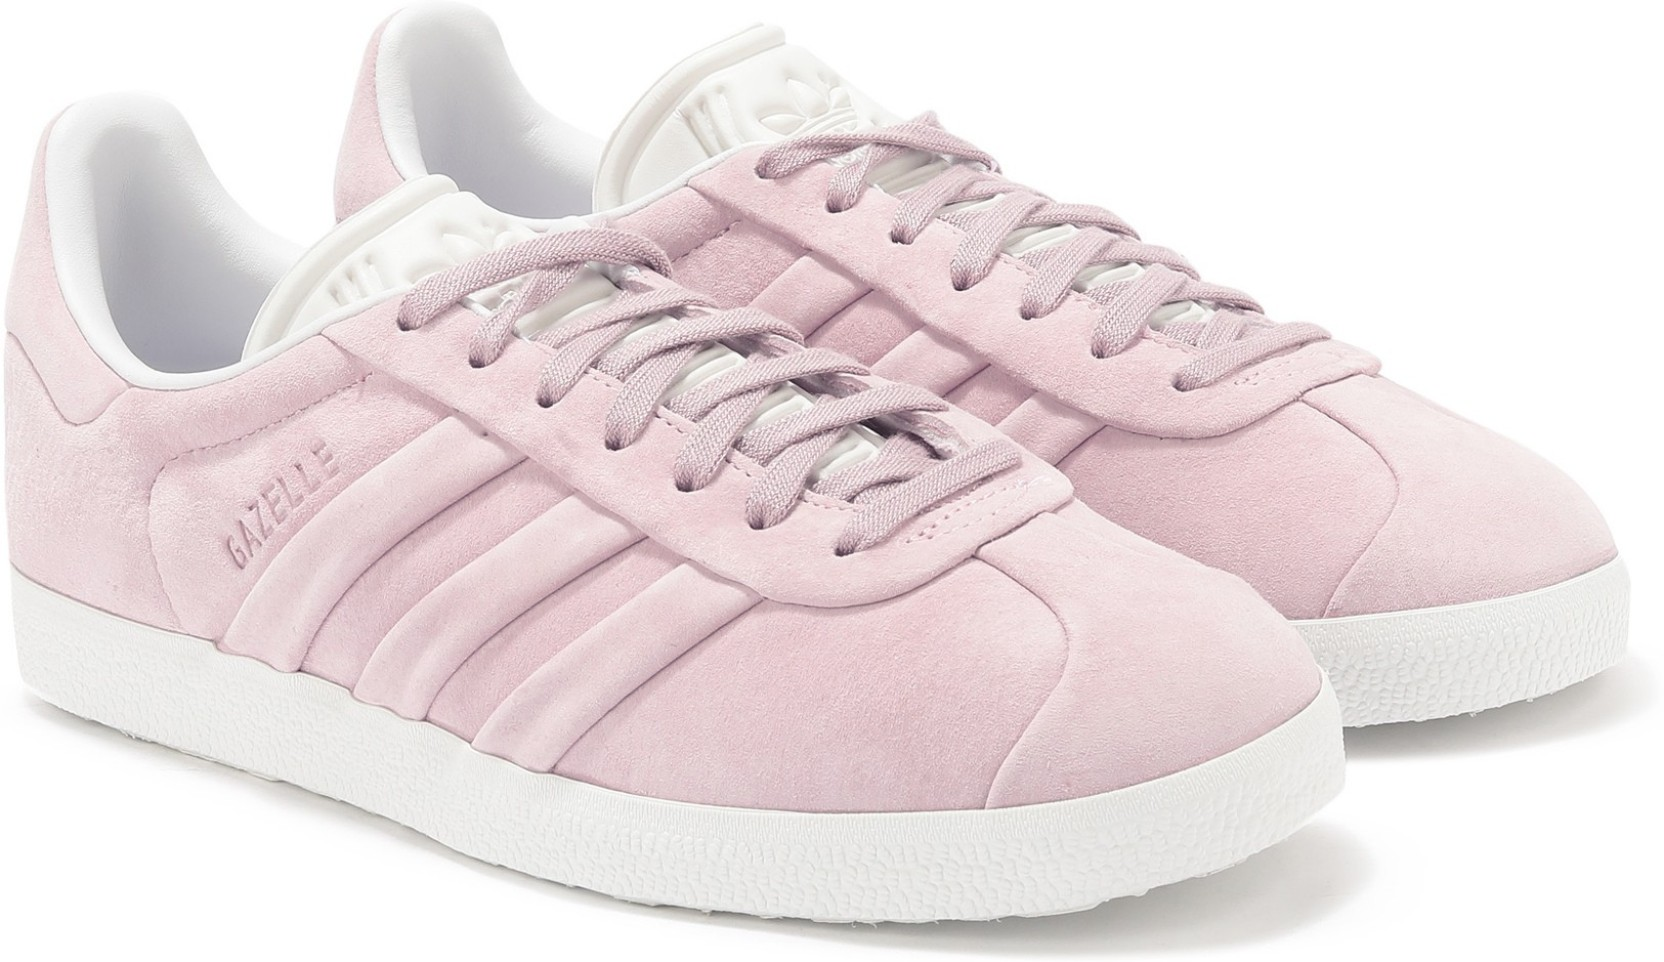 04196a7dd2d ADIDAS ORIGINALS GAZELLE STITCH AND TURN W Sneakers For Women - Buy ...